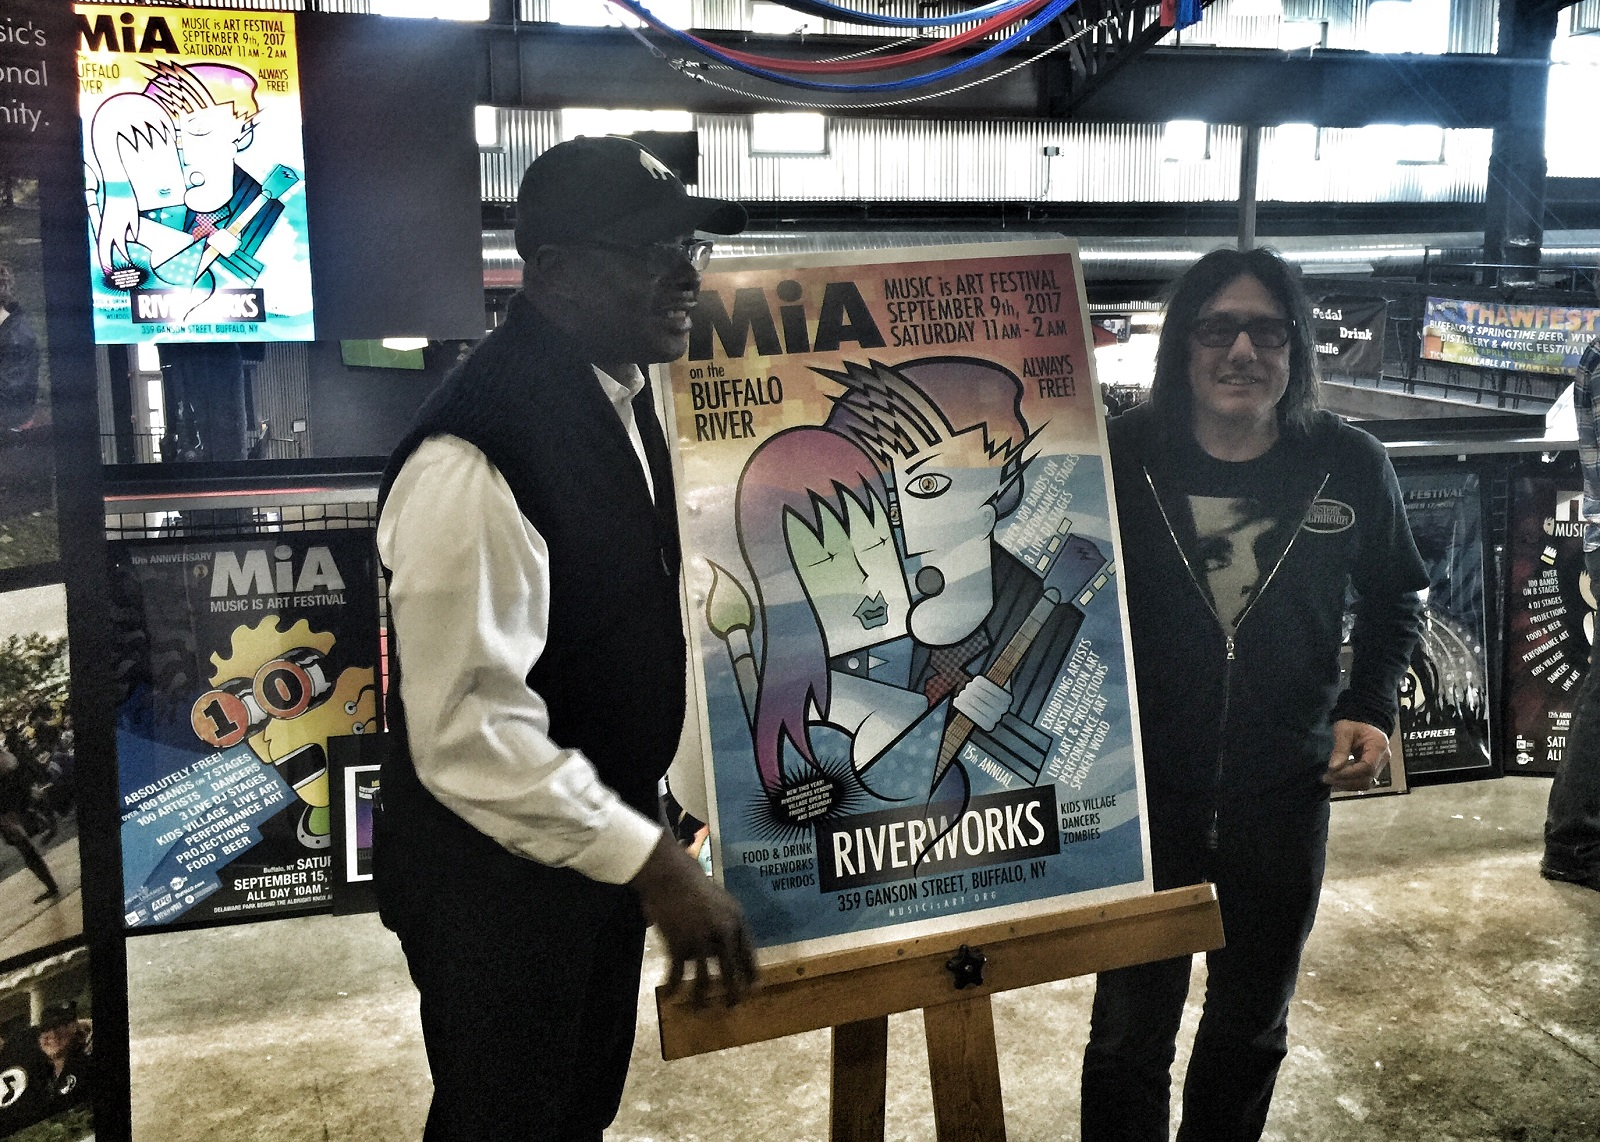 Mayor Byron Brown and Music is Art founder and president Robby Takac pose with a poster announcing the 2017 edition of the Music is Art Festival. (Jeff Miers/buffalo News)